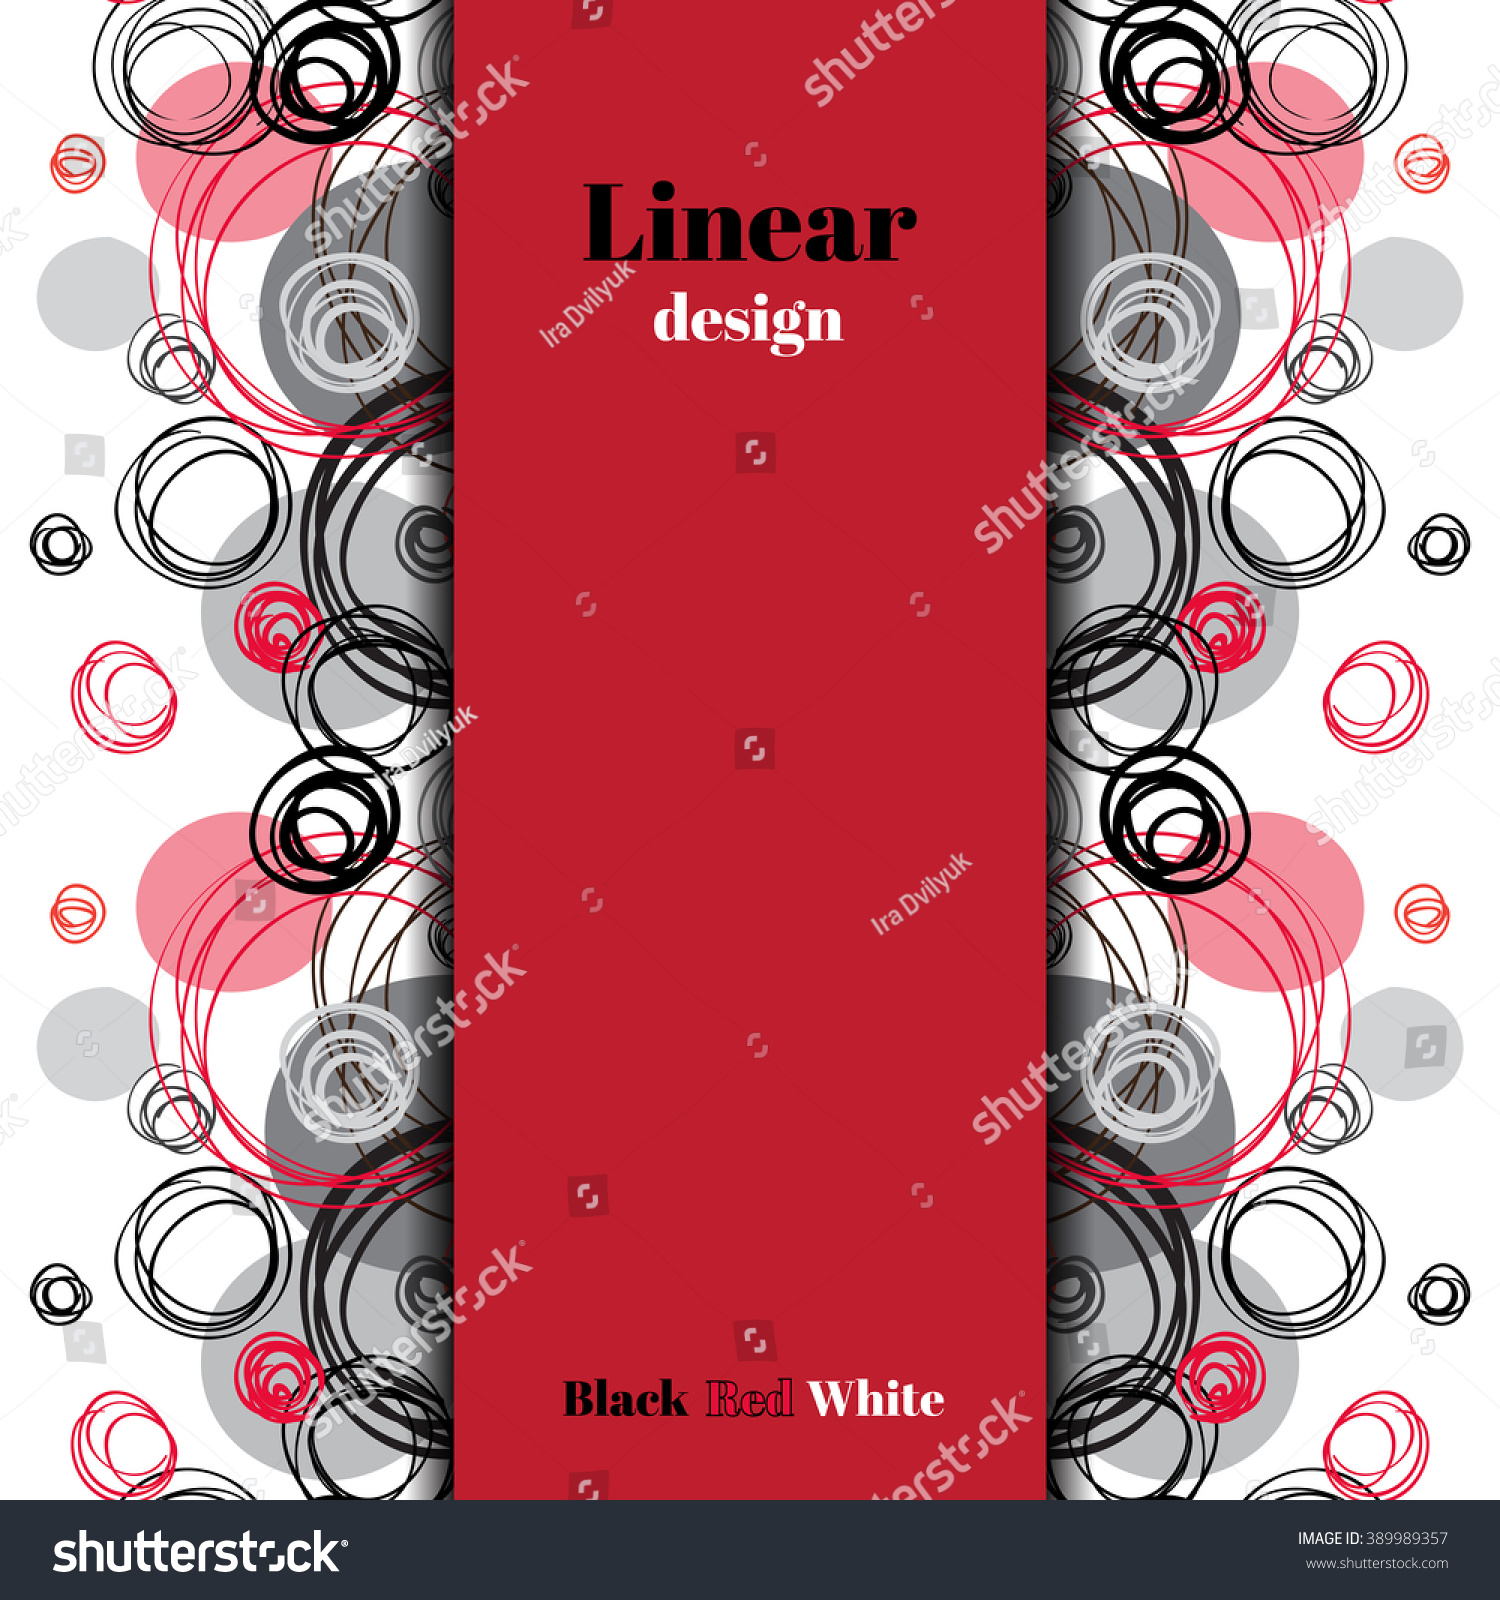 Background image vertical center - Abstract Geometric Background Vertical Center Border Stripe Design Black Red Gray Hand Drawn Intersecting